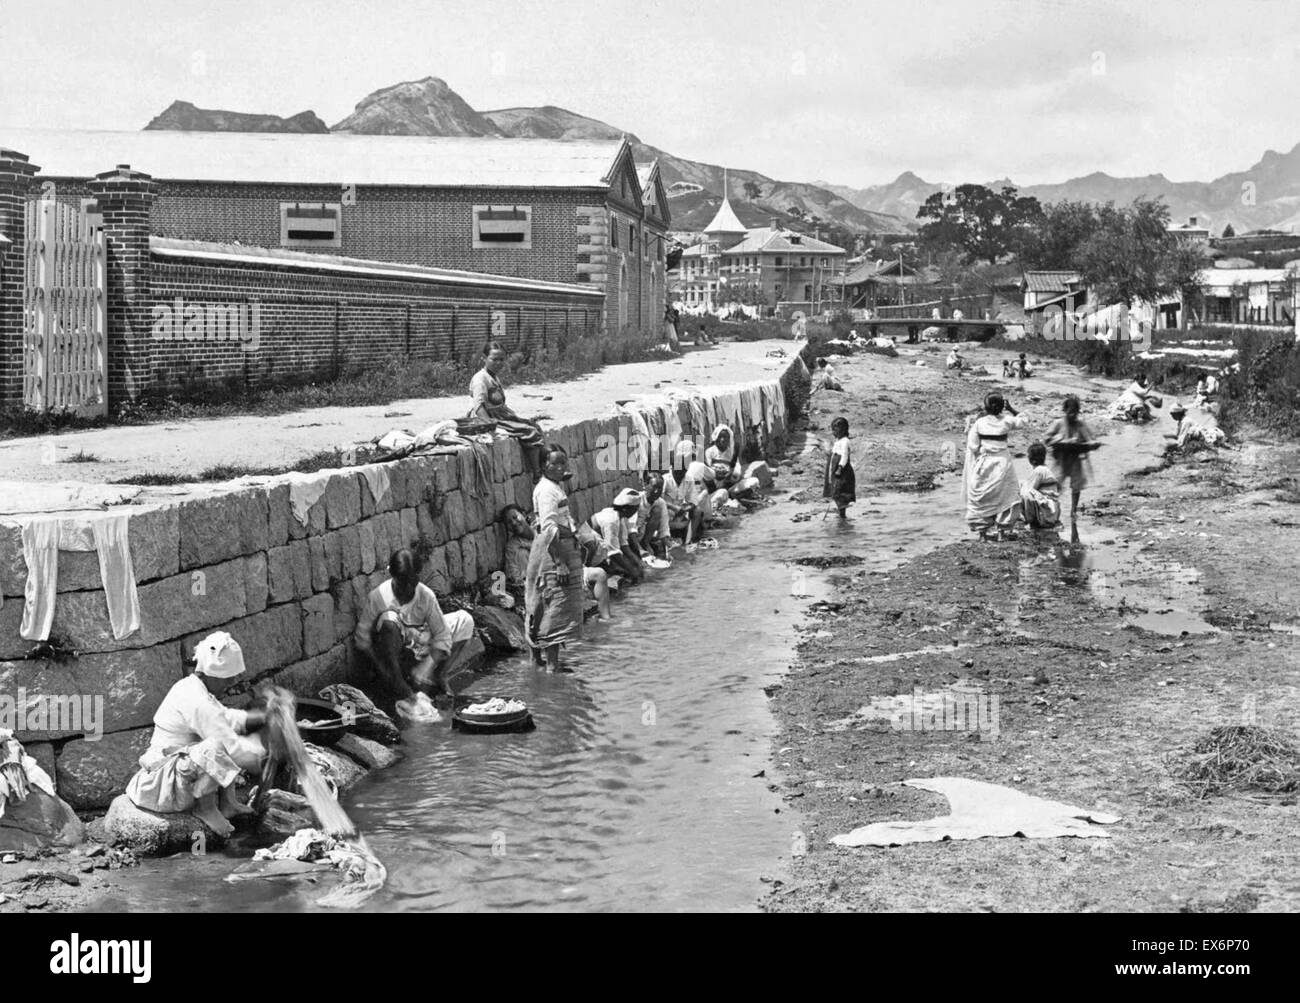 India under the British raj. Women are shown washing laundry in the stream running through a side street, ca. 1904 - Stock Image